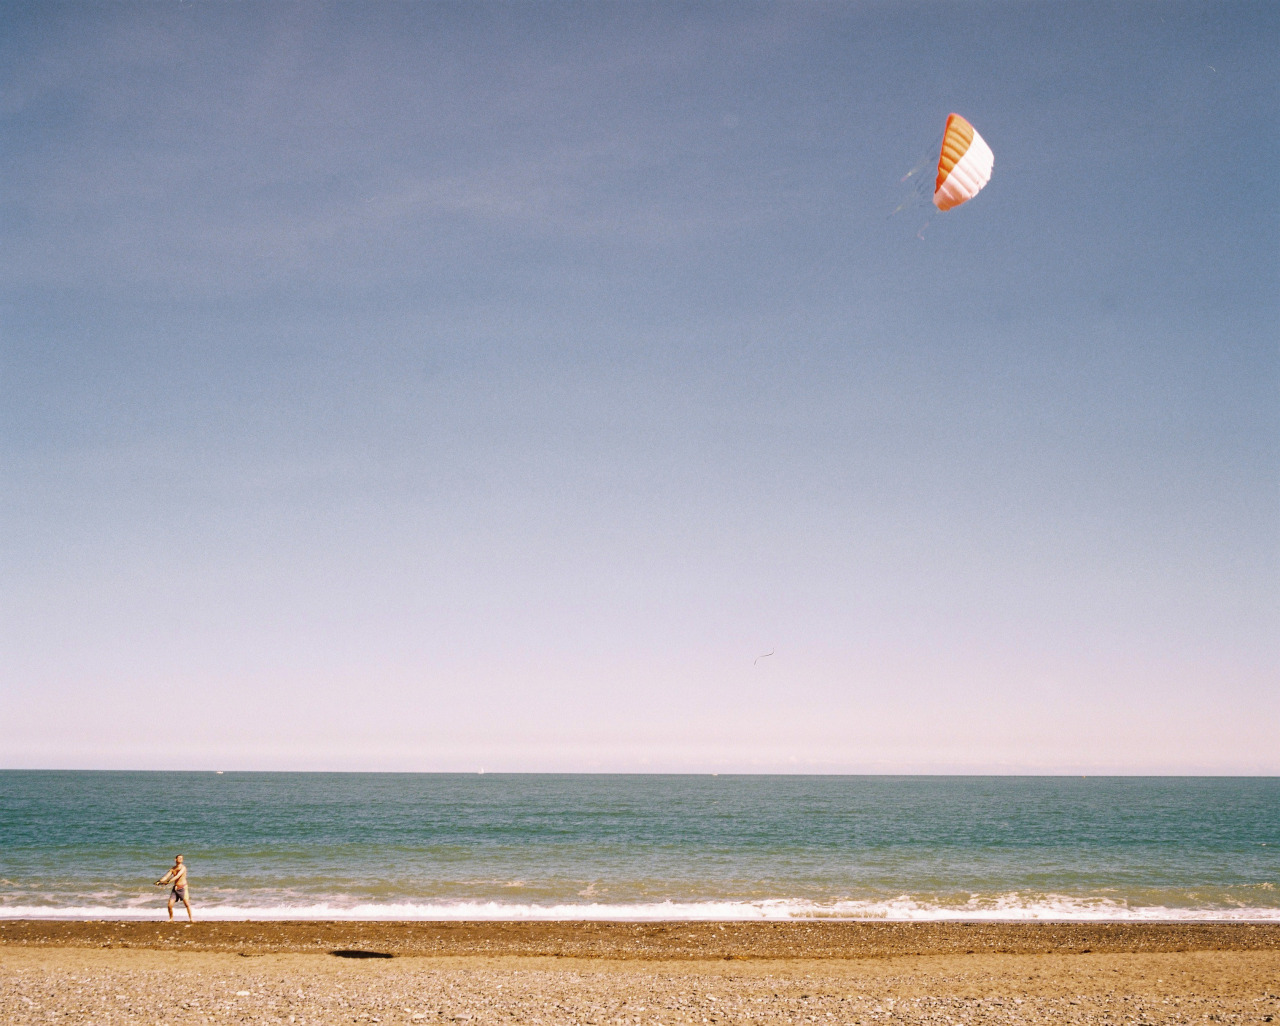 Flying kites on a beach somewhere in Dublin